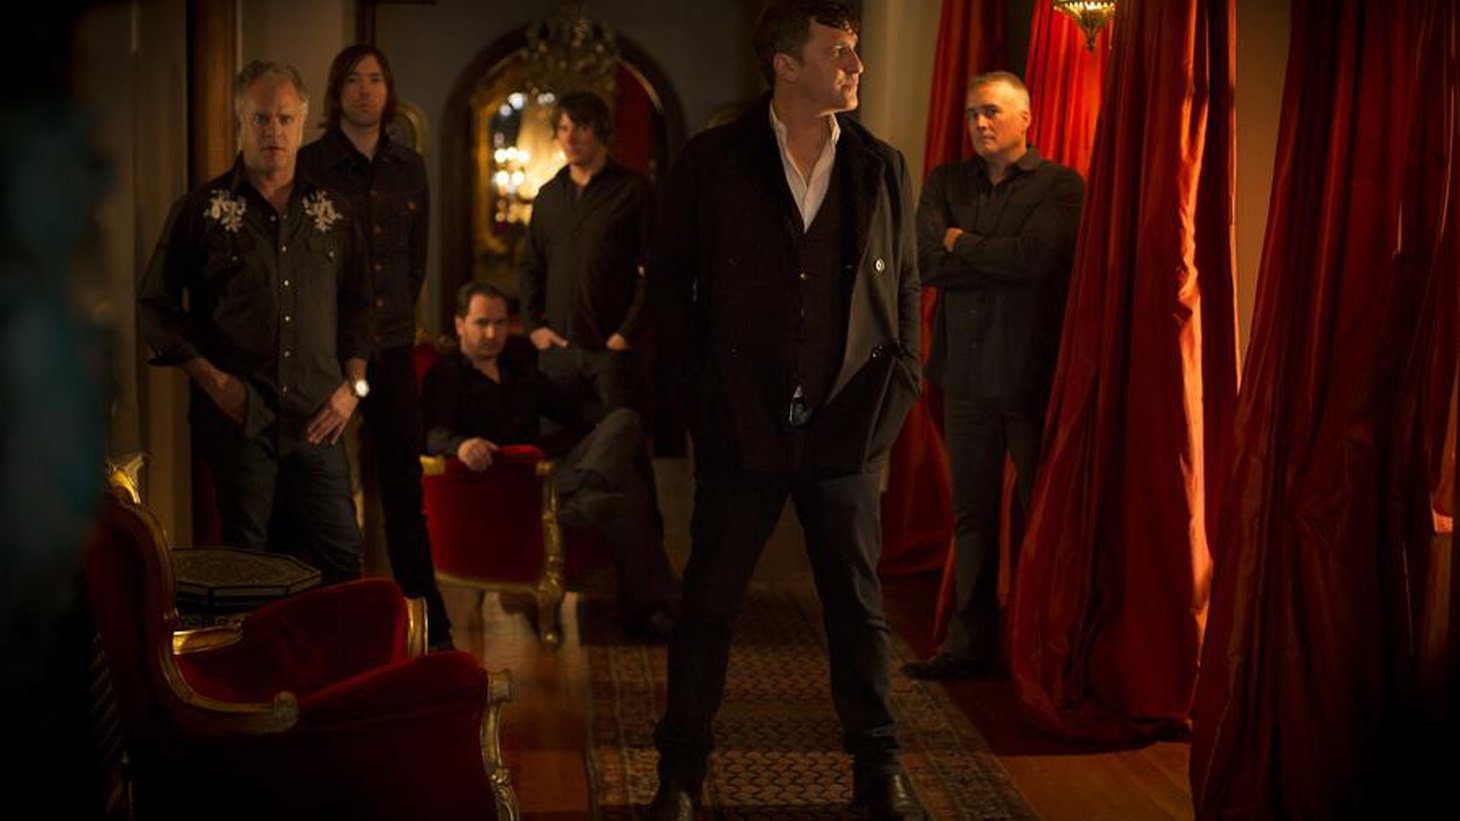 Running with the album's cinematic feel, 'Do to the Beast' is in many ways frontman Greg Dulli's 'True Detective'.